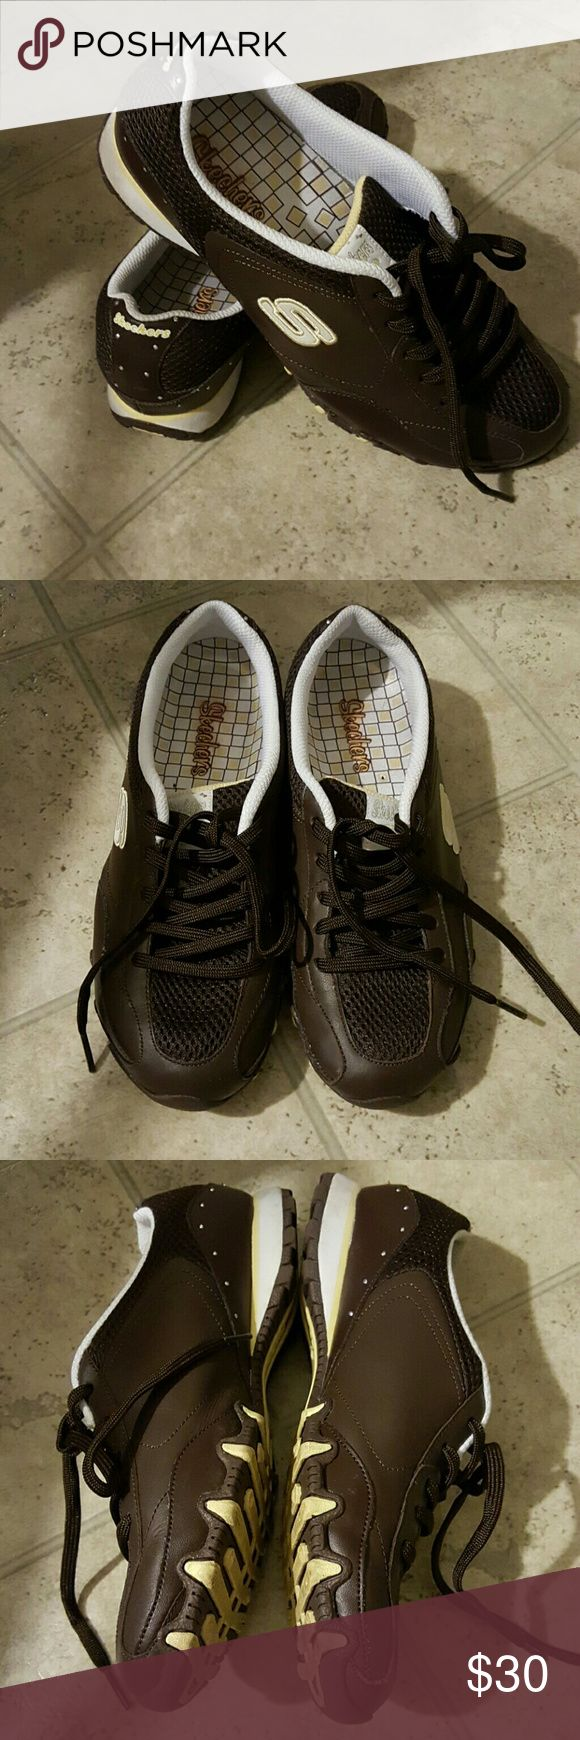 💖 Skechers Casual Chocolate Ladies Shoe's 💗 Dark chocolate lace up ladies shoe's by skechers.  Back sole is white trim with yellow and rhinestone accents. Skechers Shoes Sneakers